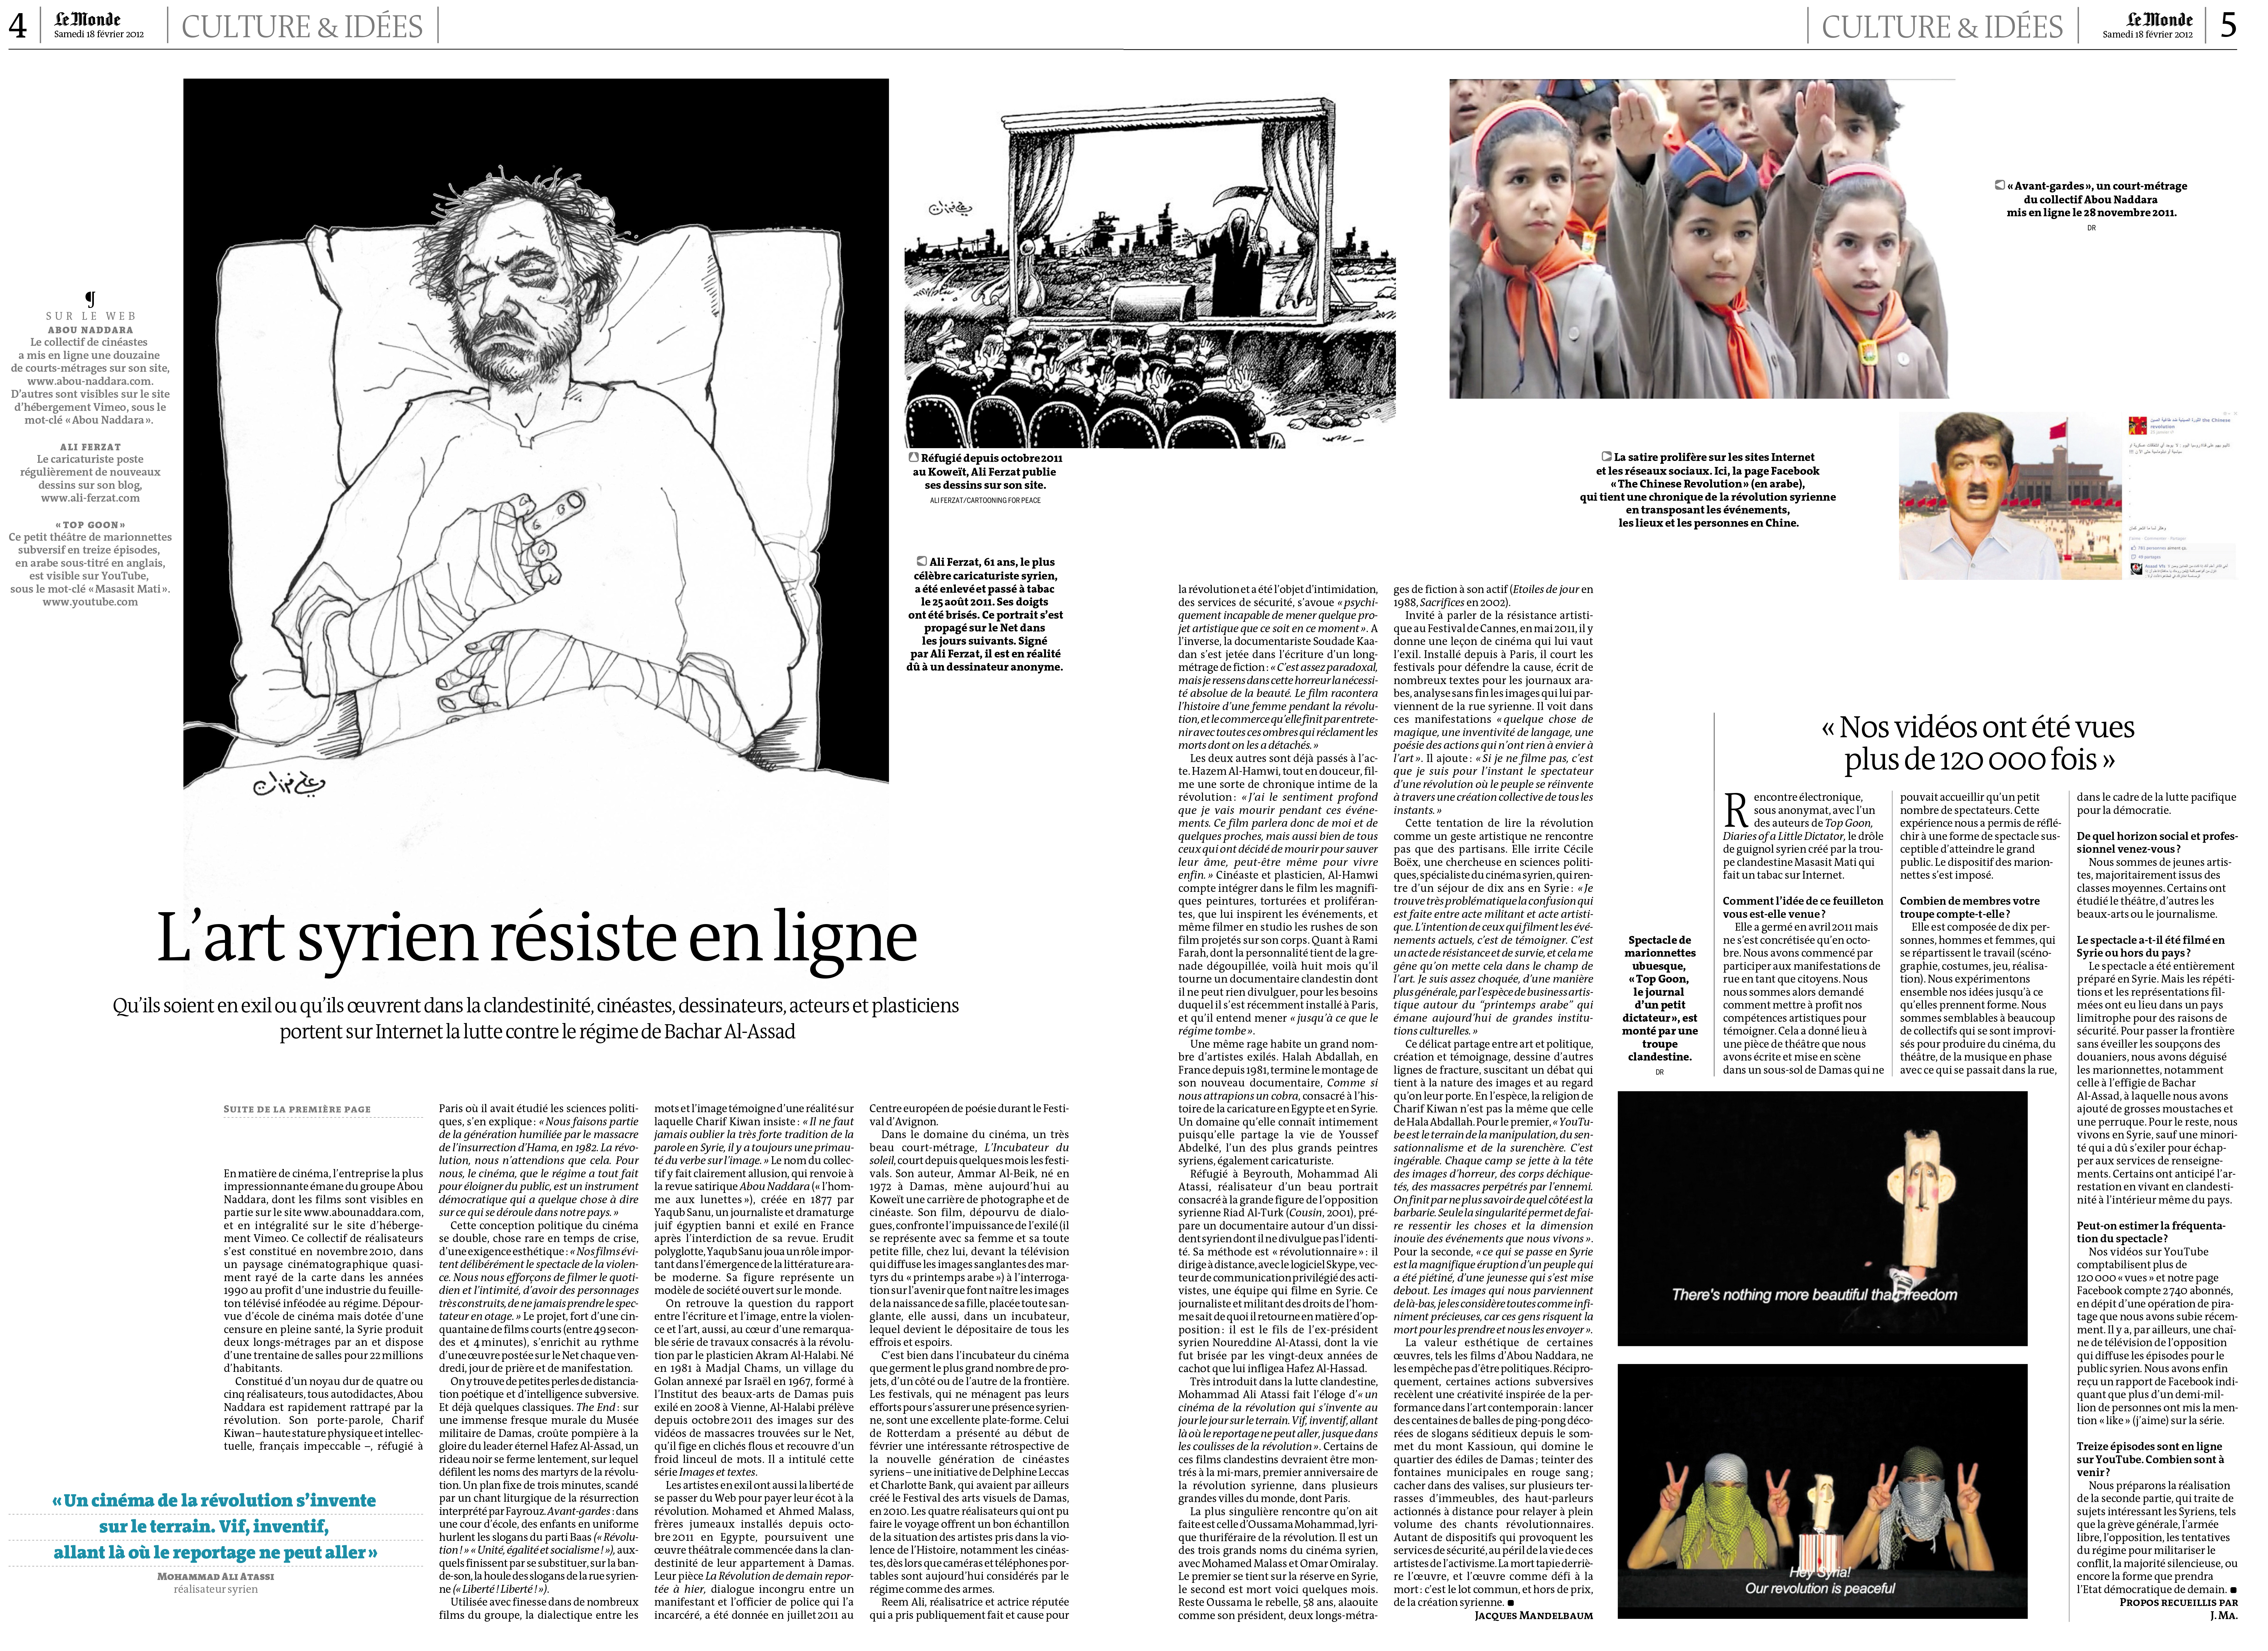 Article from Le Monde, February 21th, 2012